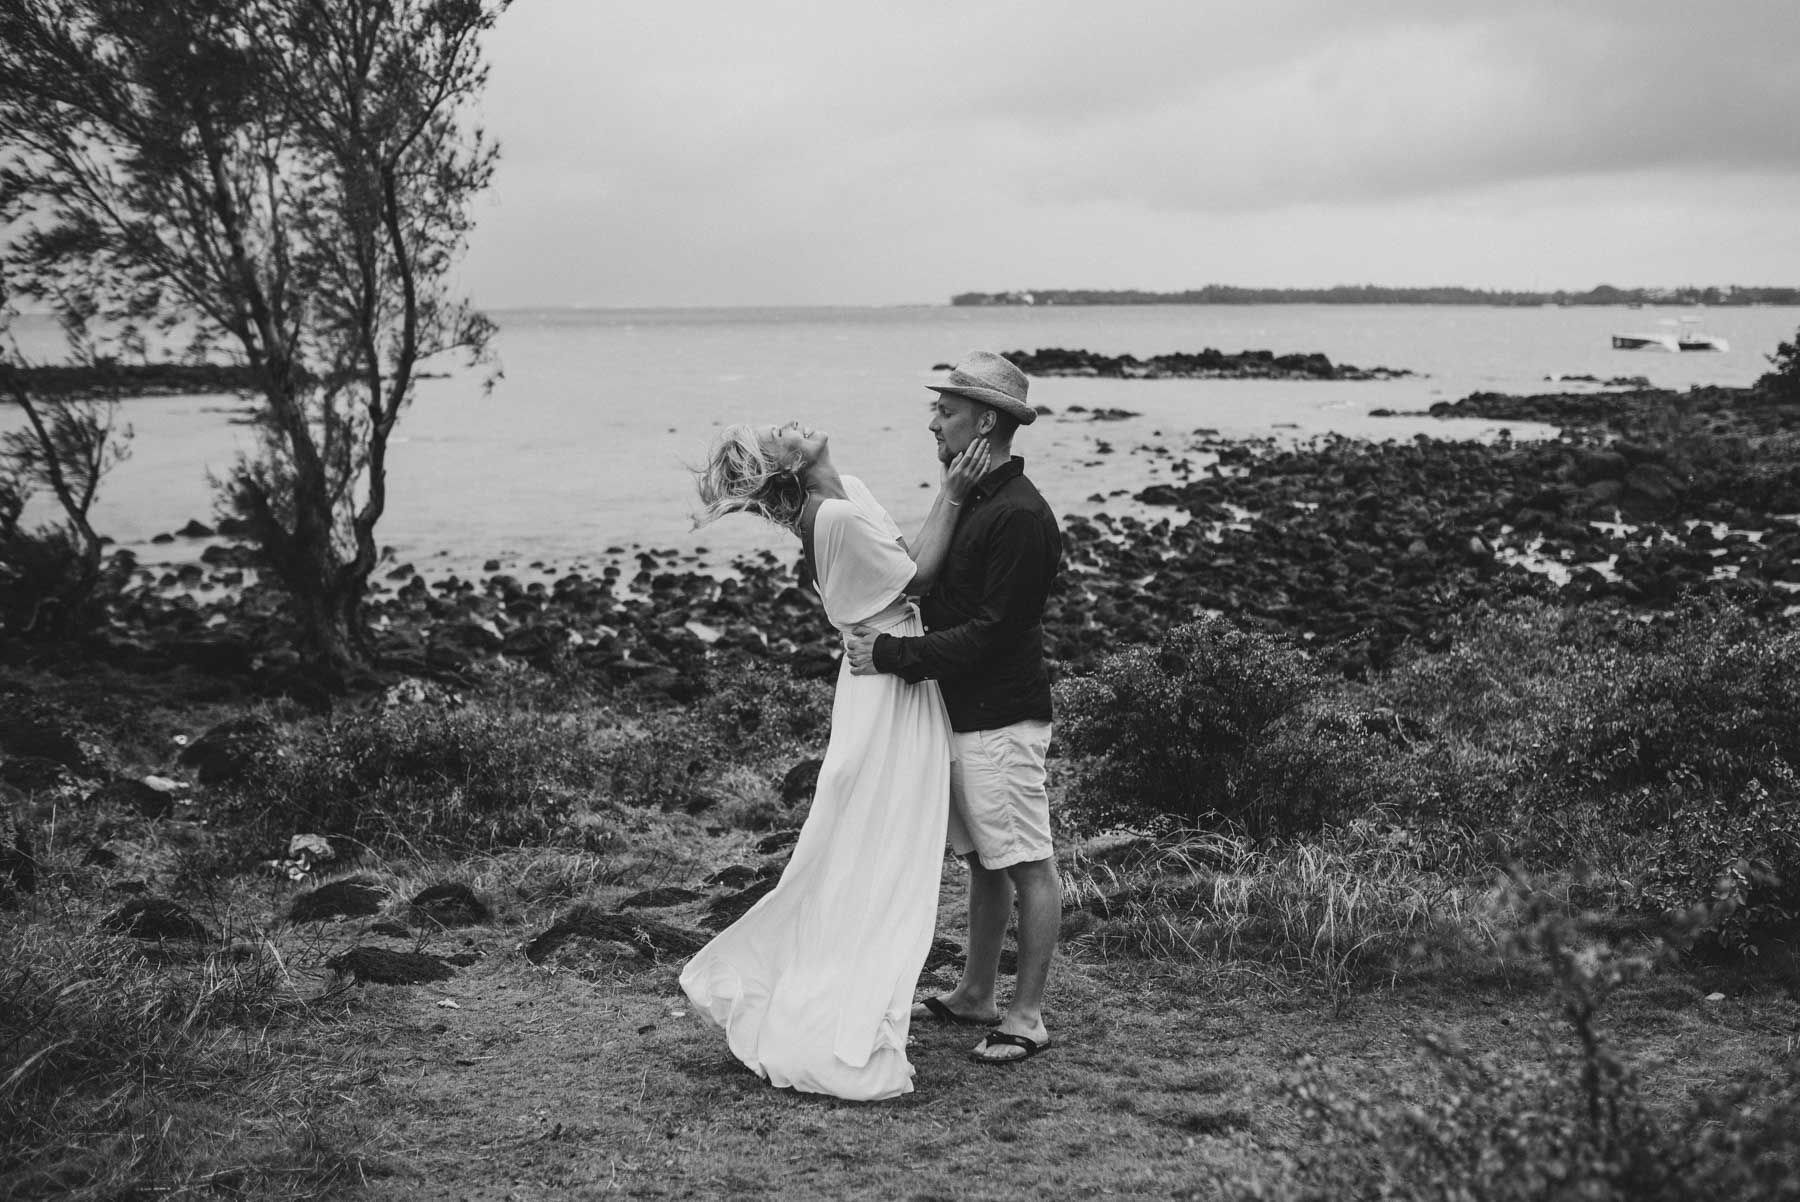 Copy of Sita Kelly | Mauritius Honeymoon Photographer | Couple embracing, woman laughing